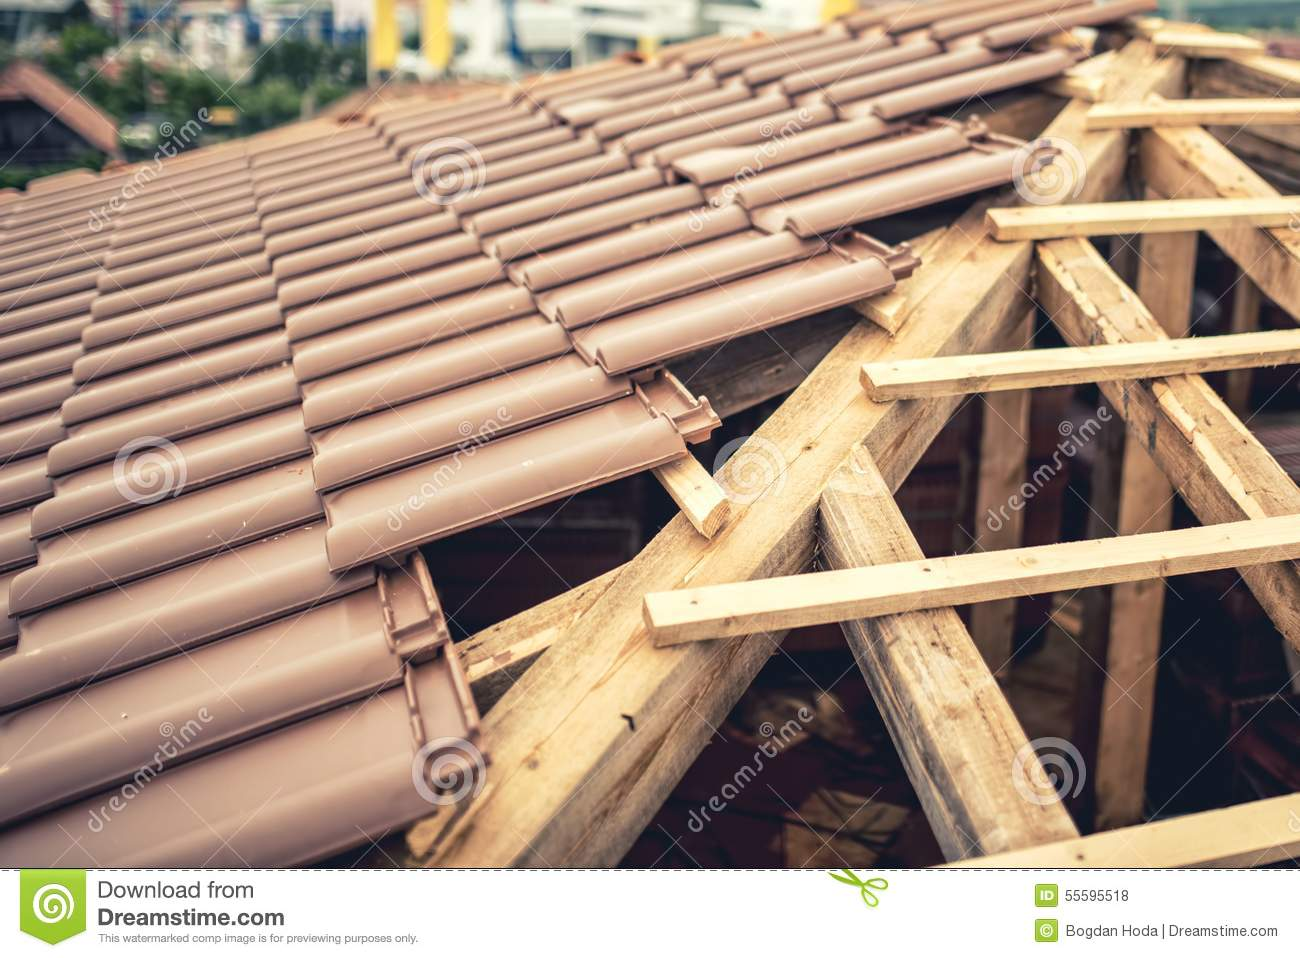 House Tiles roof under construction with stacks of brown, modern tiles